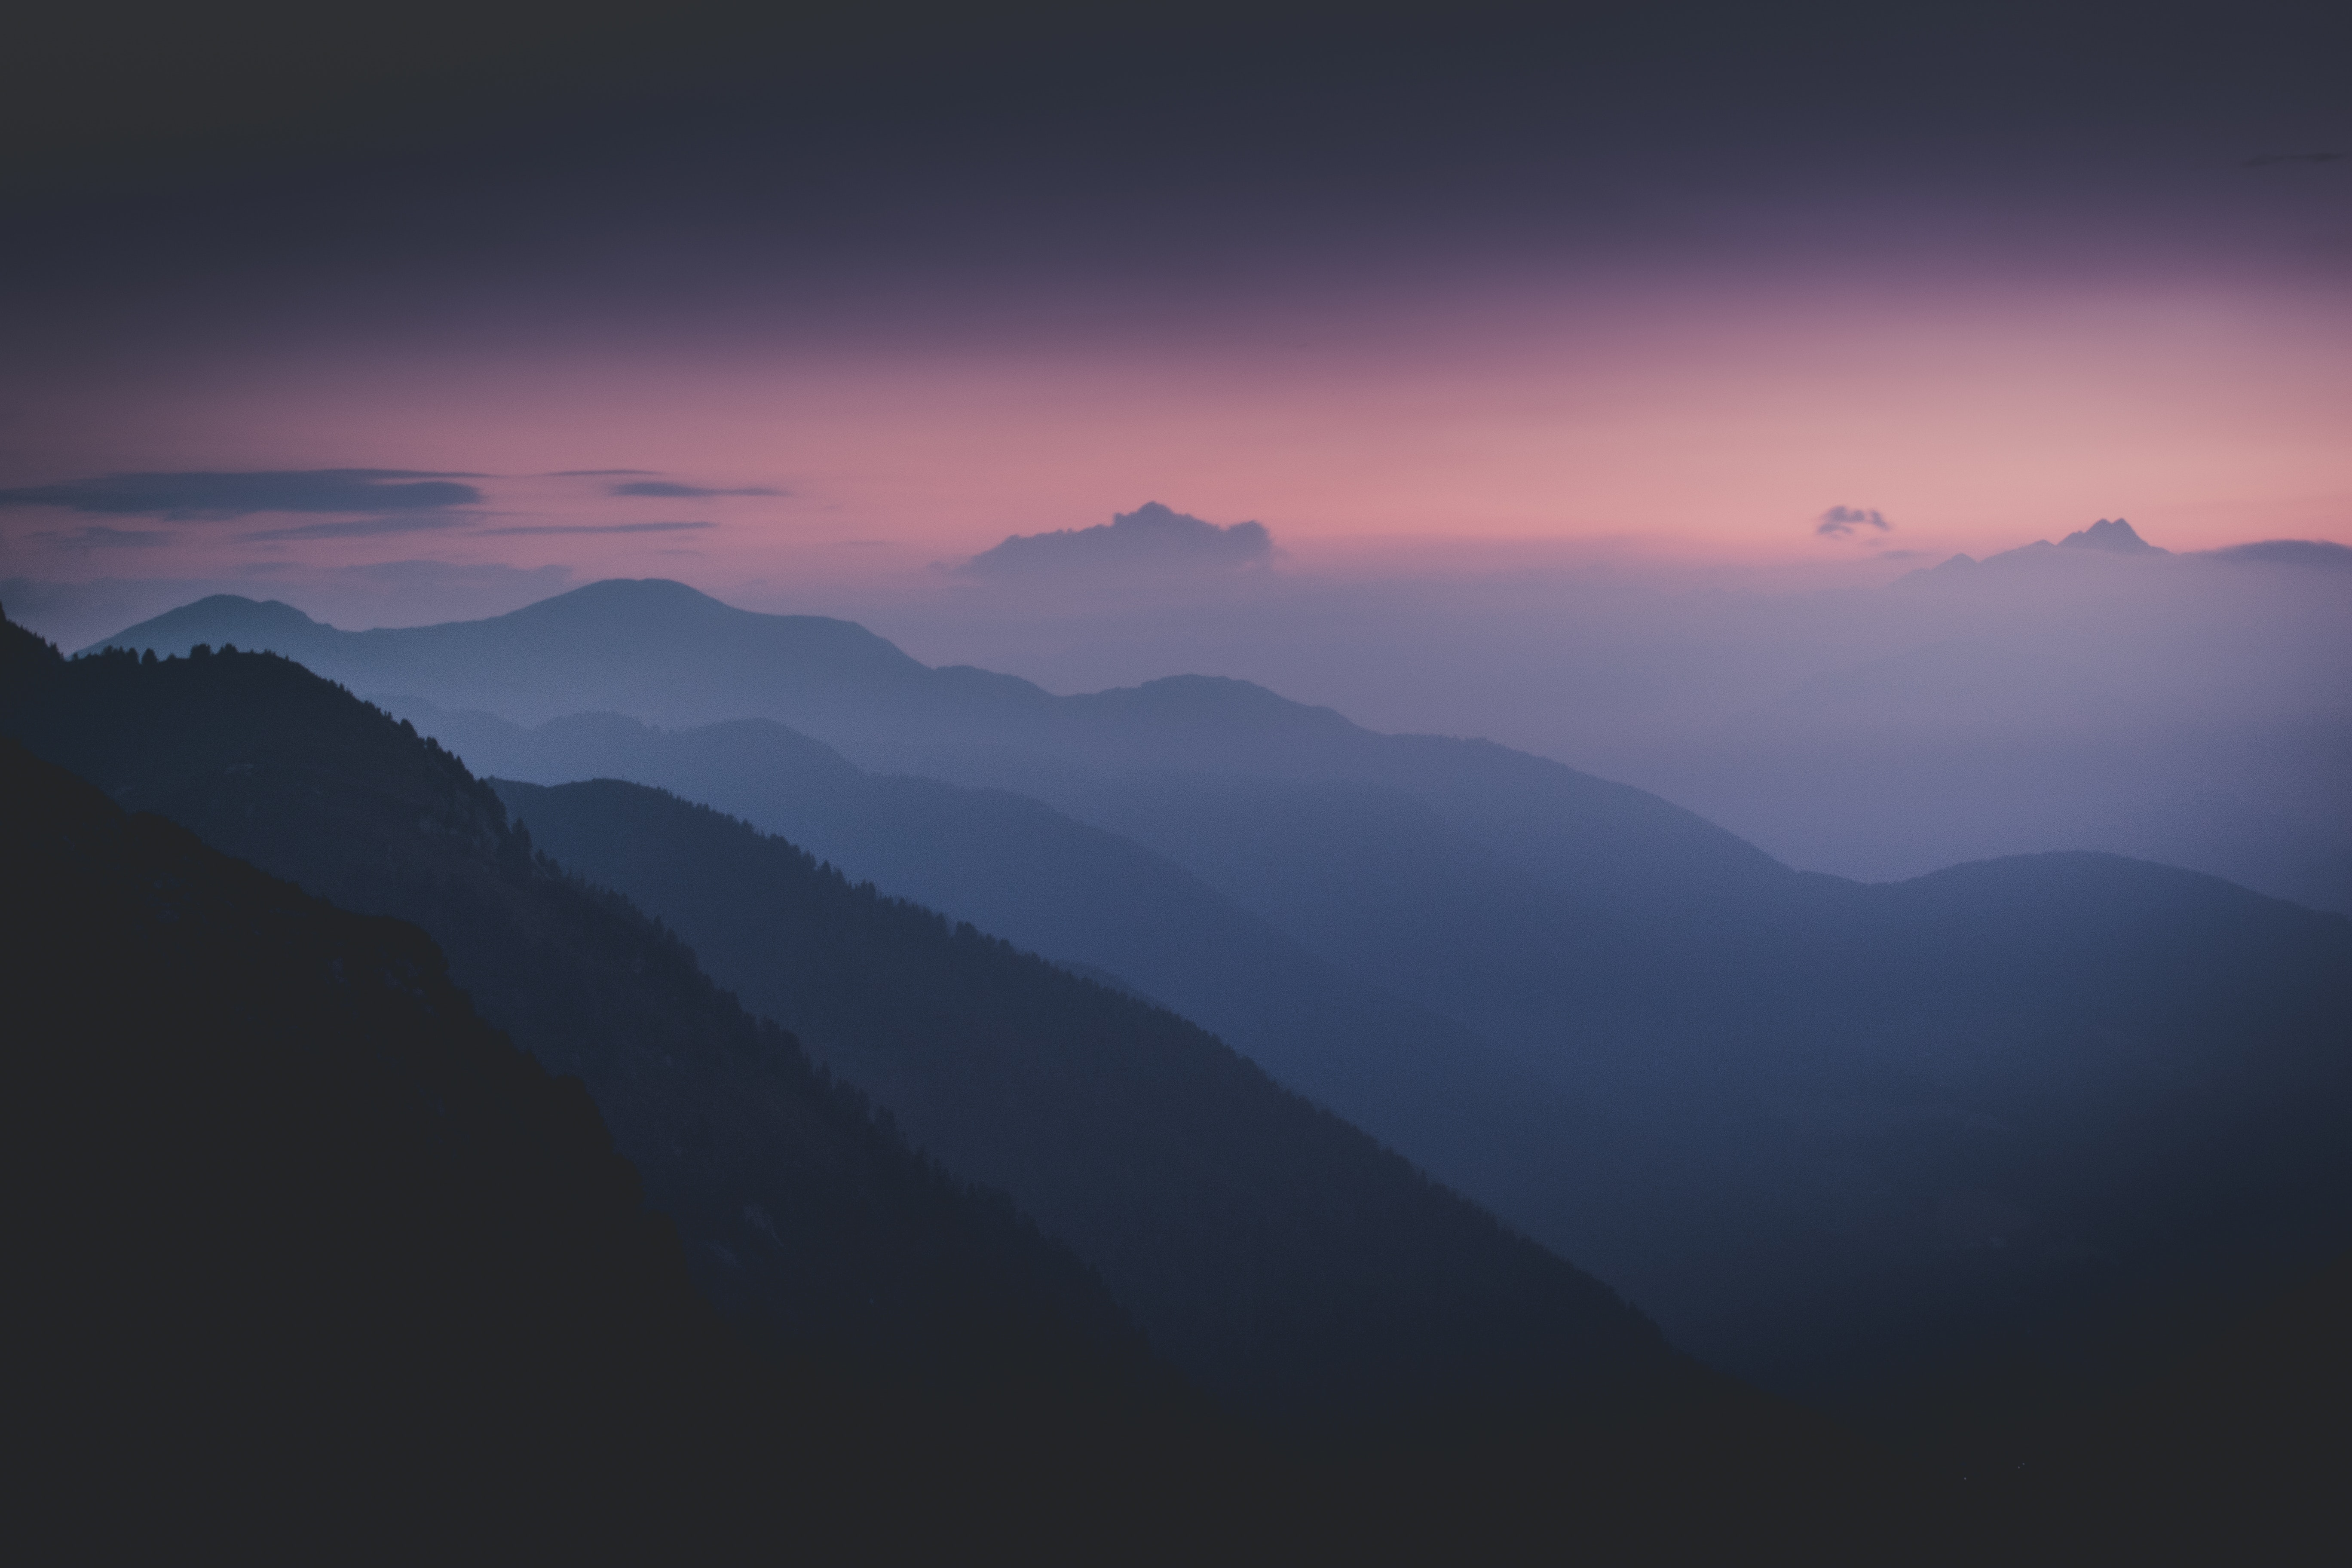 119500 free wallpaper 720x1520 for phone, download images Trees, Mountains, Night, Dark, Fog, Slopes 720x1520 for mobile